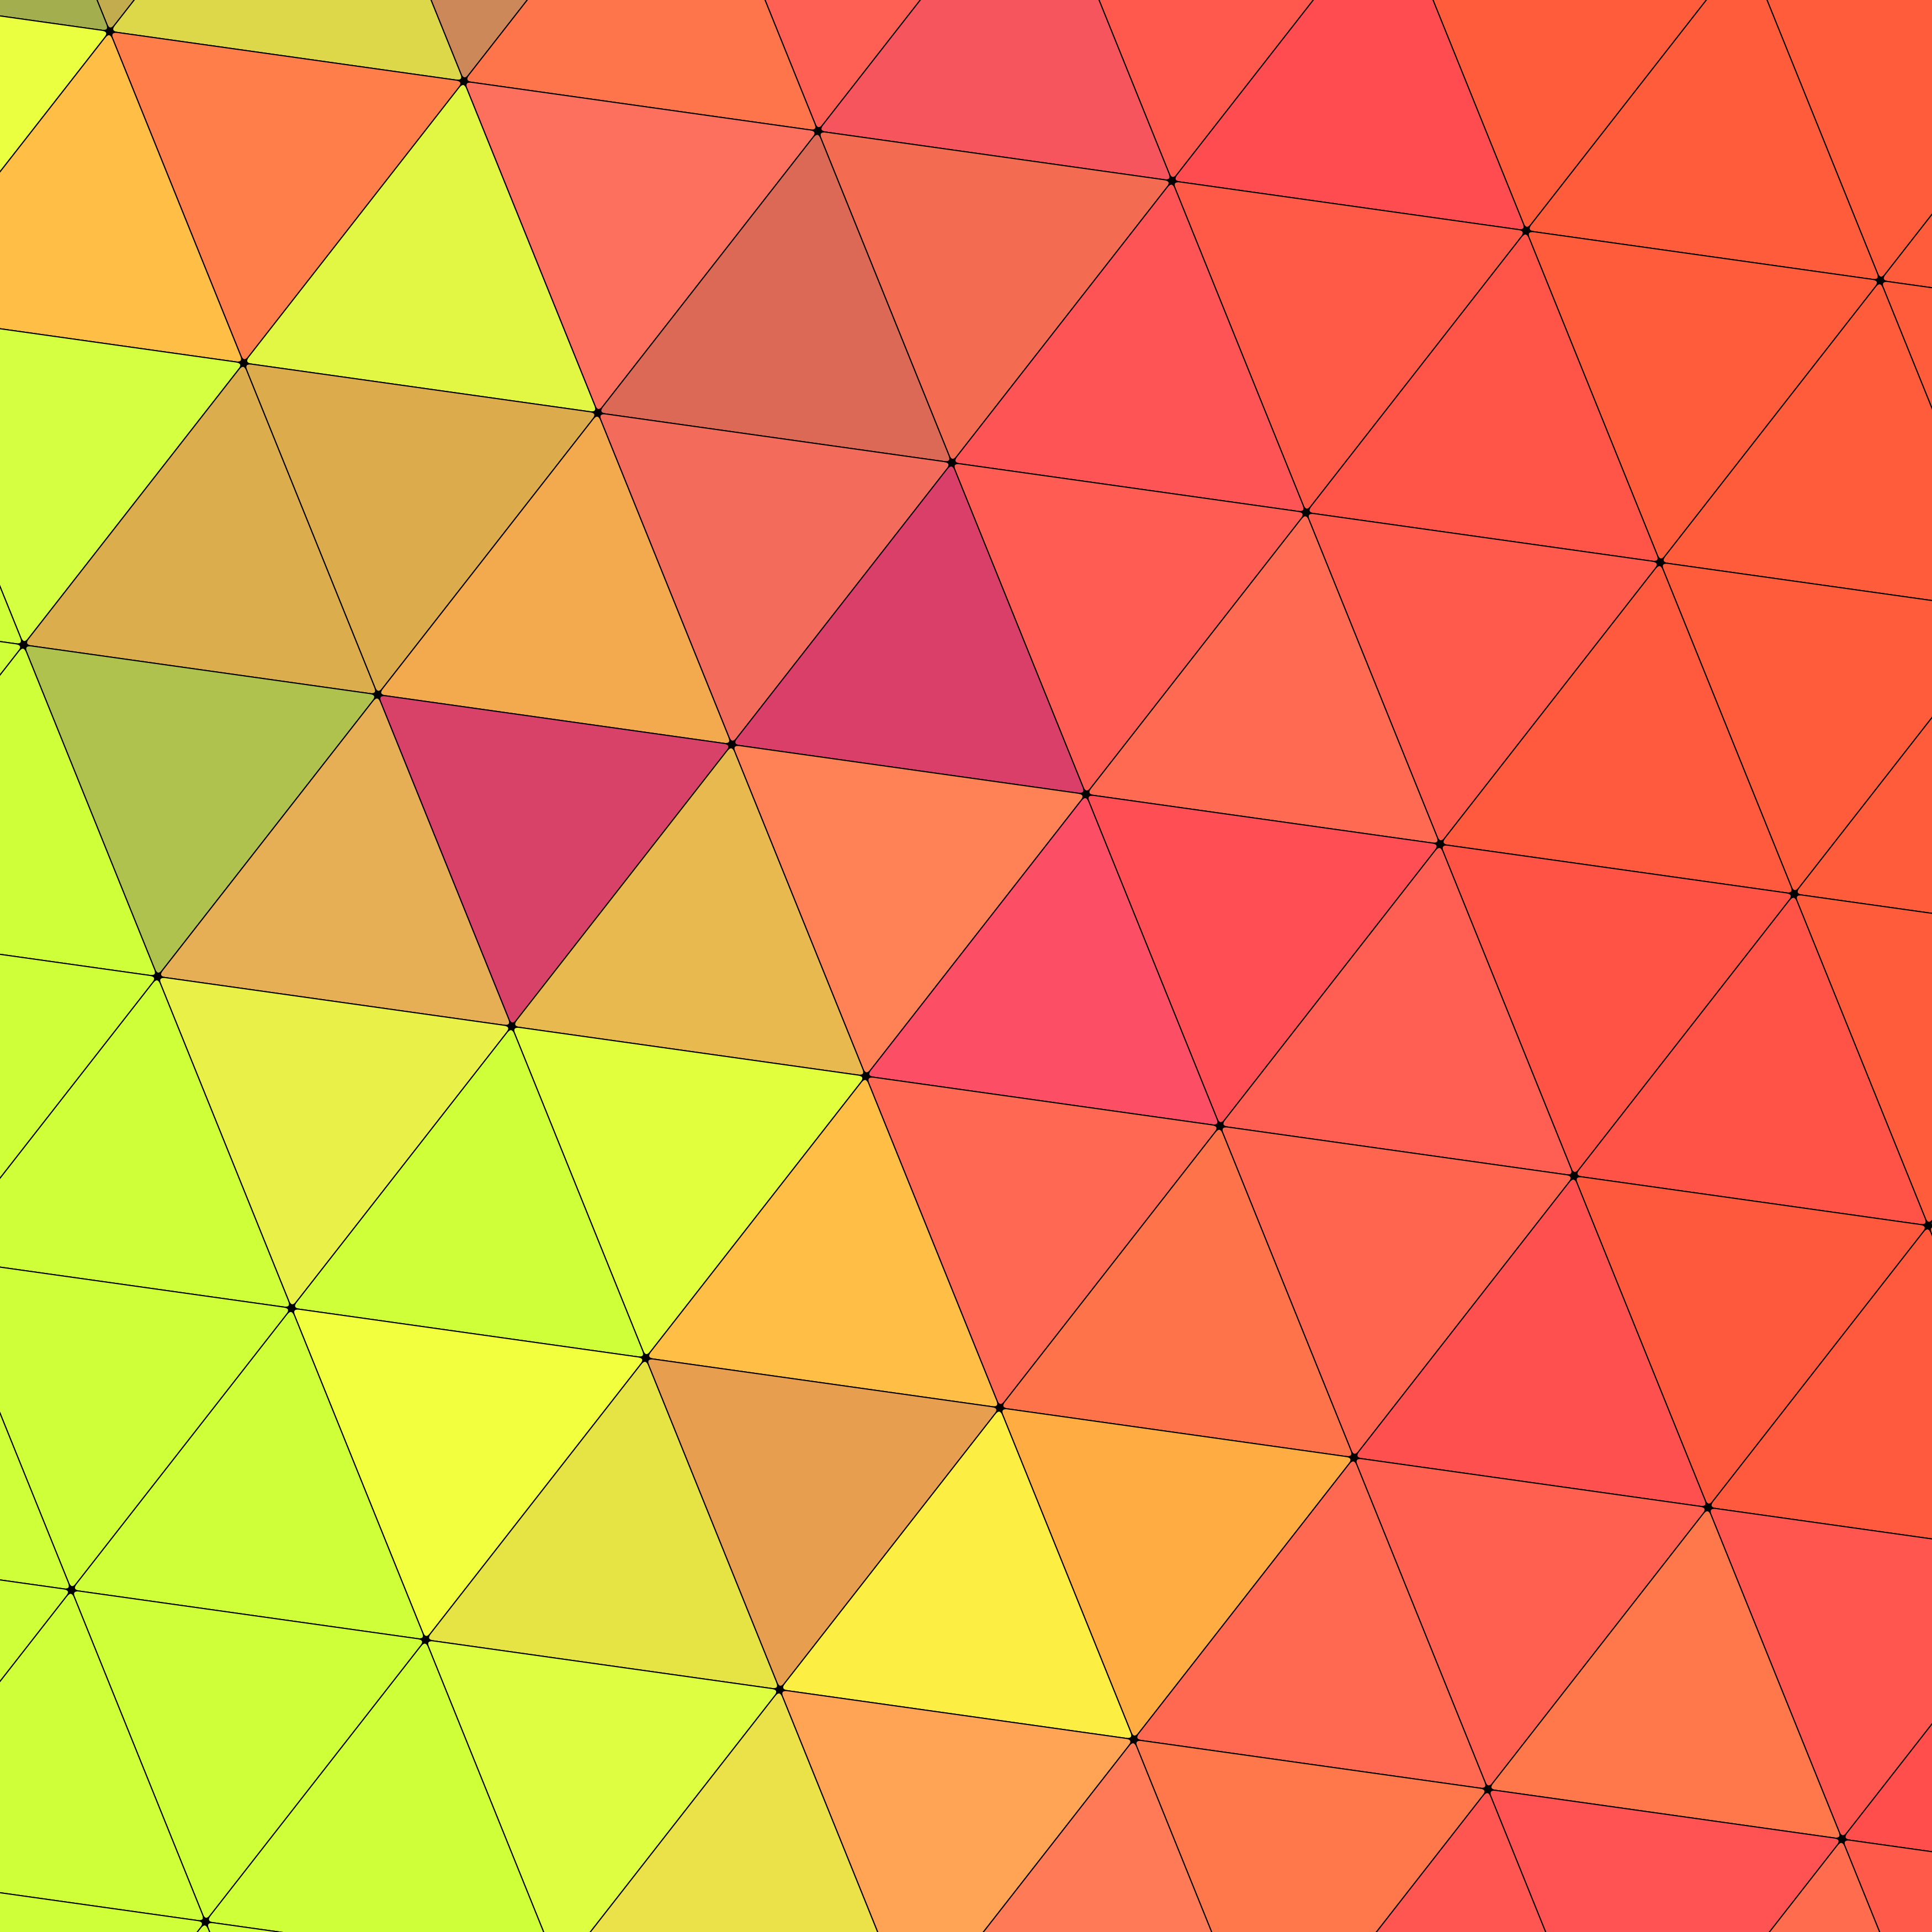 Colorful Material Design QHD Wallpaper 27